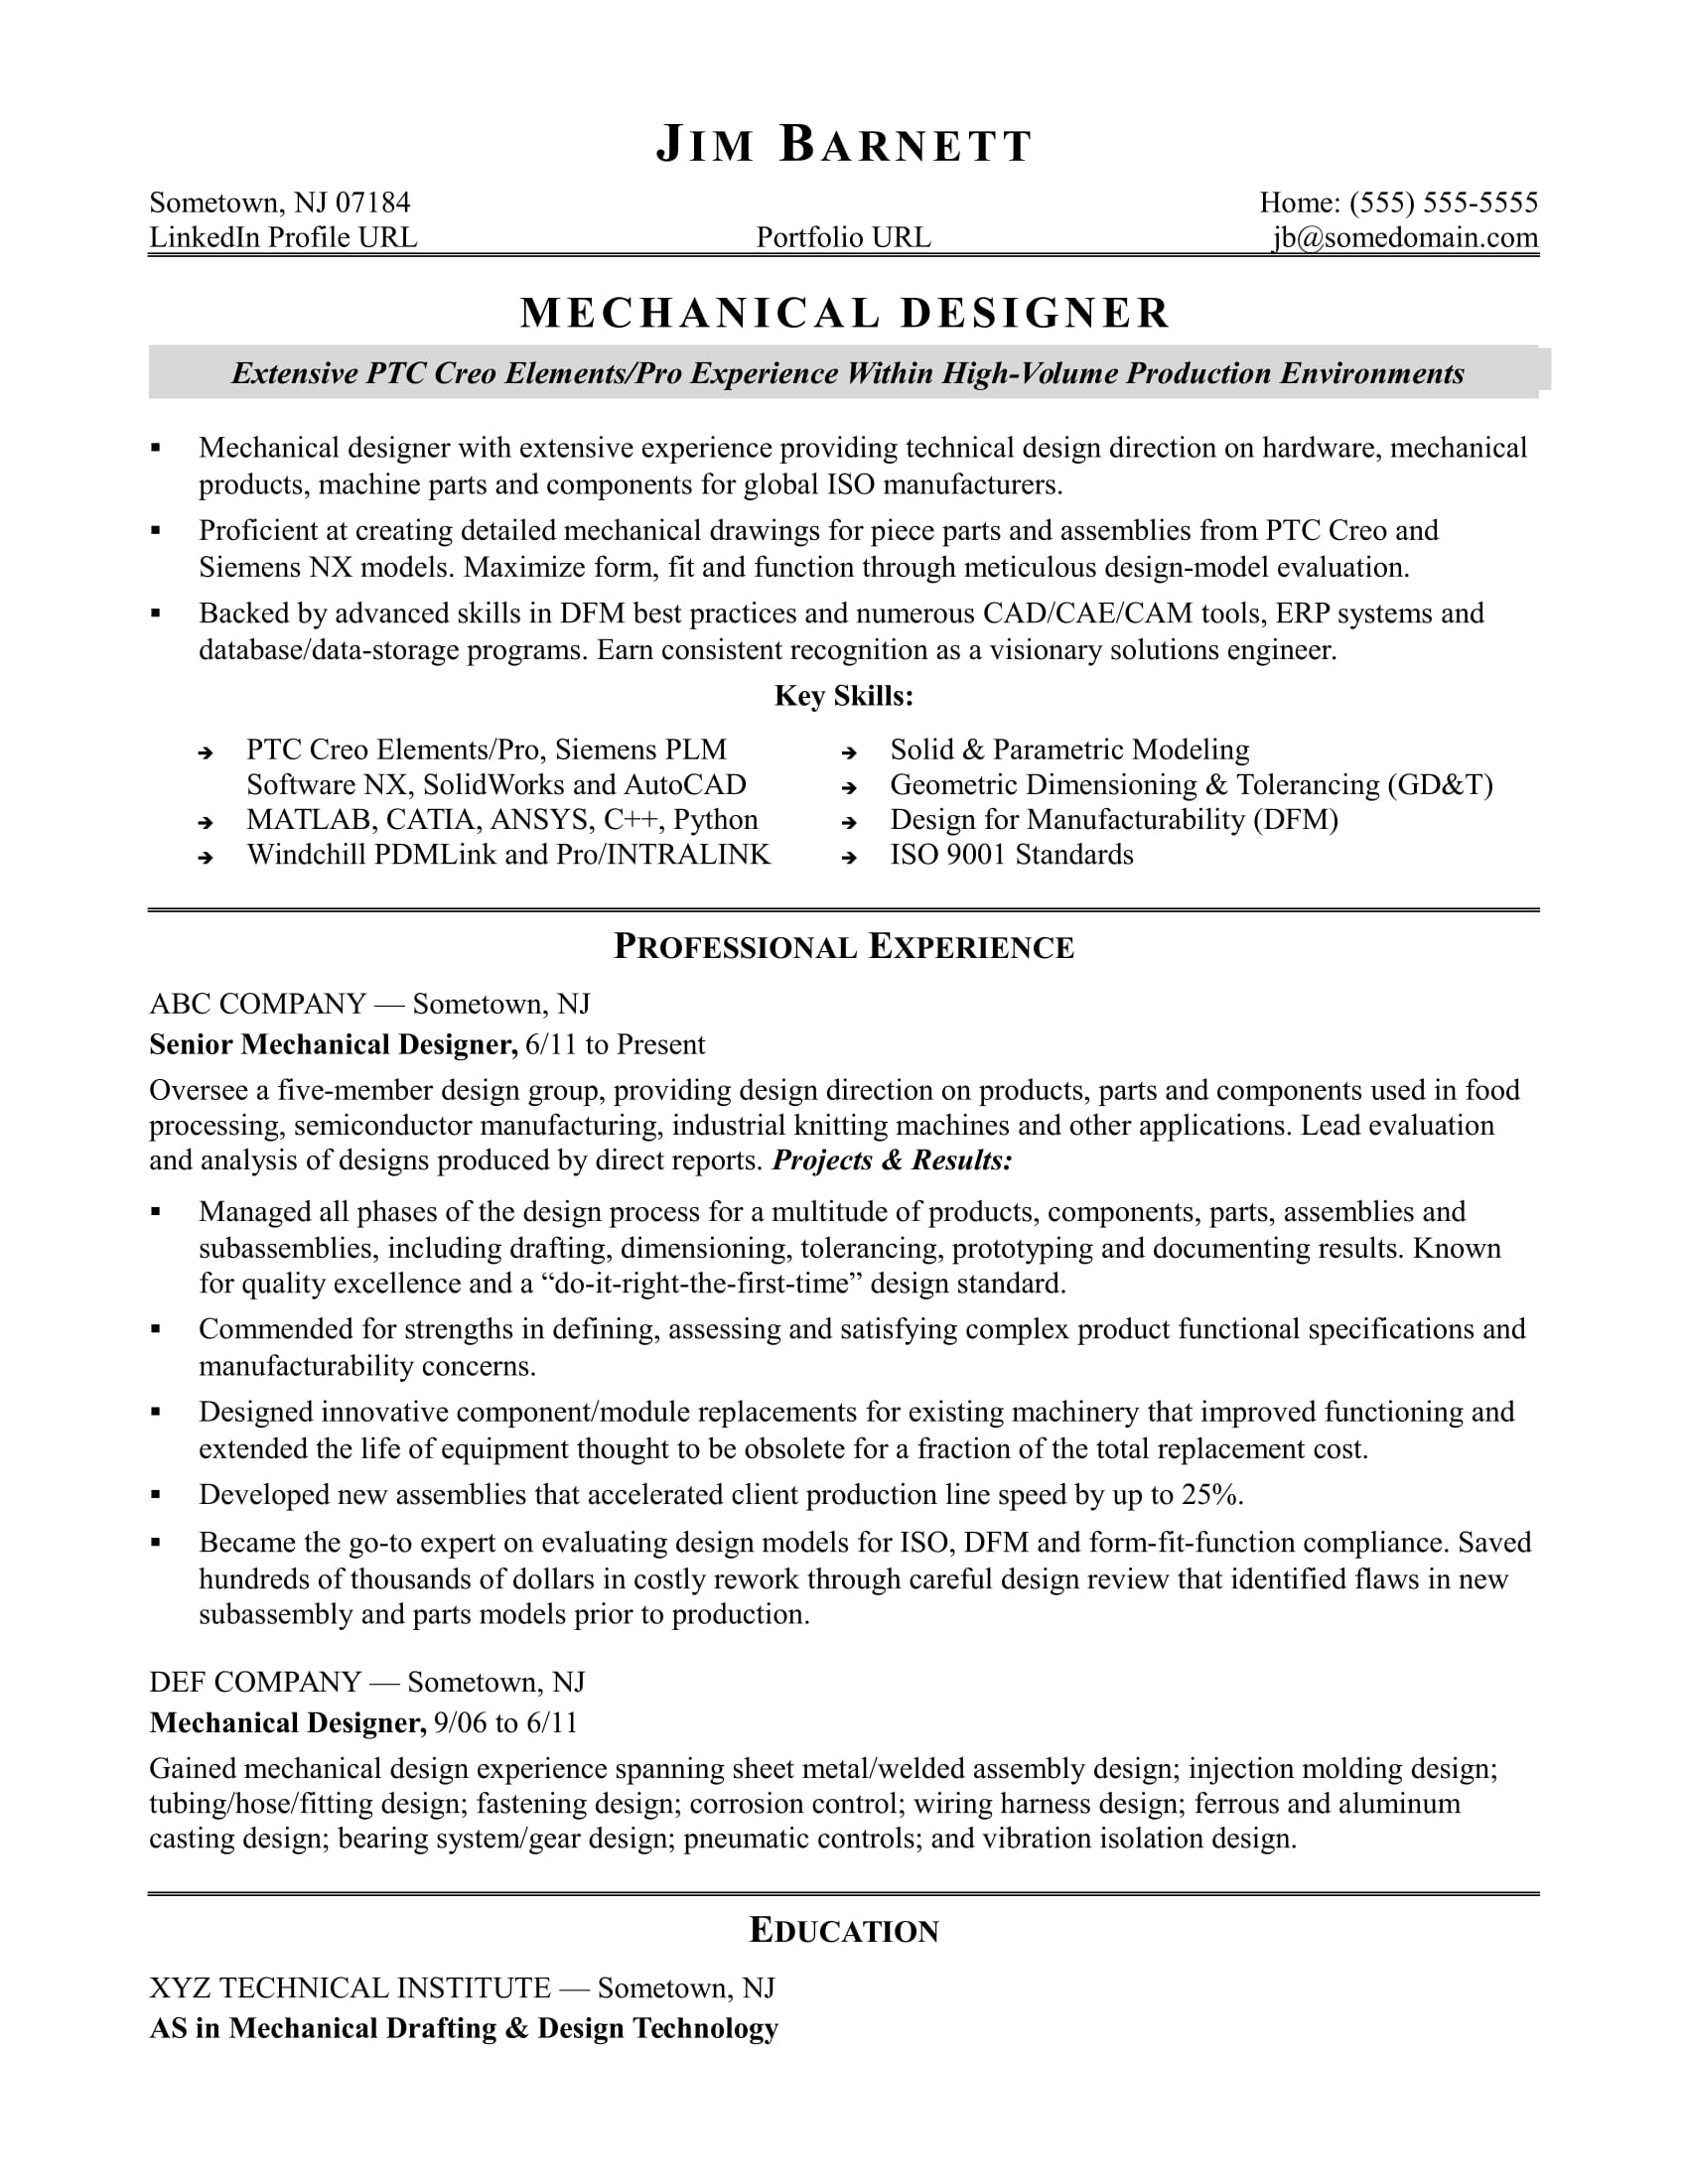 experience resume for mechanical engineer